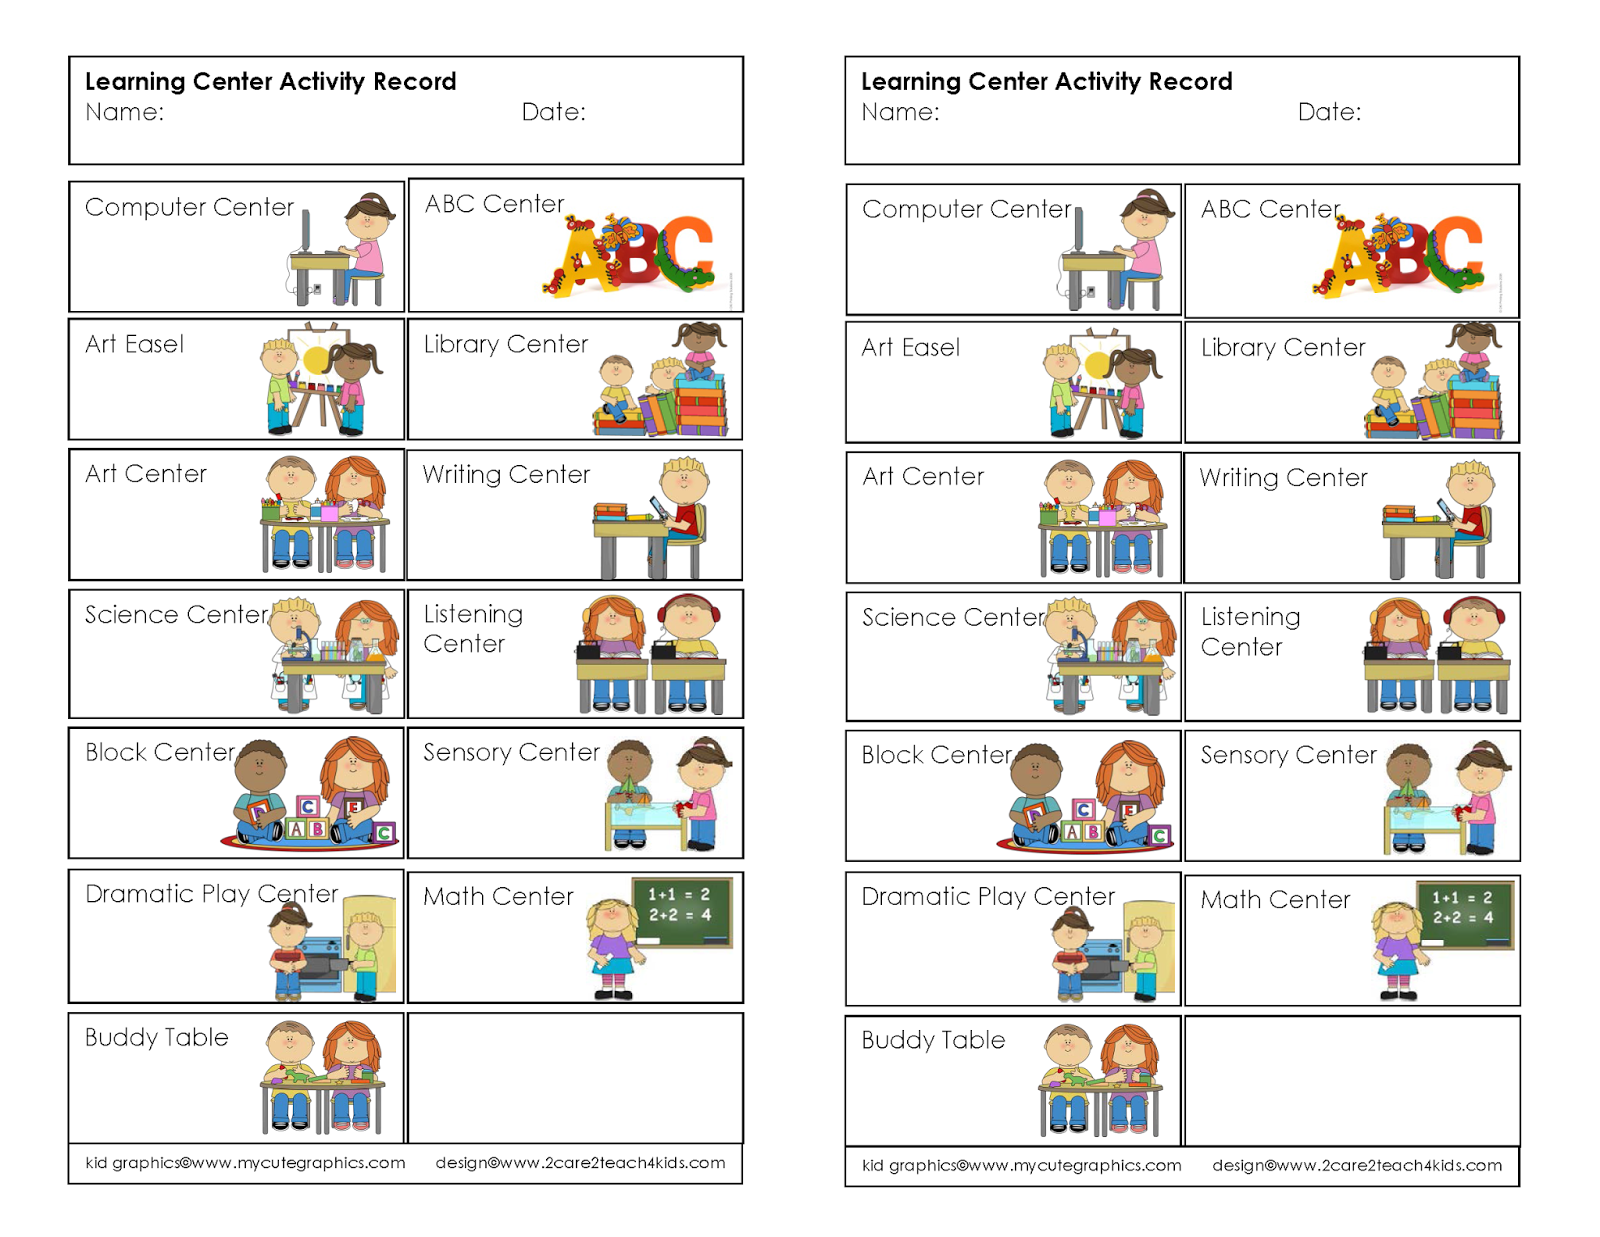 Learning Center Activity Record Free Printable